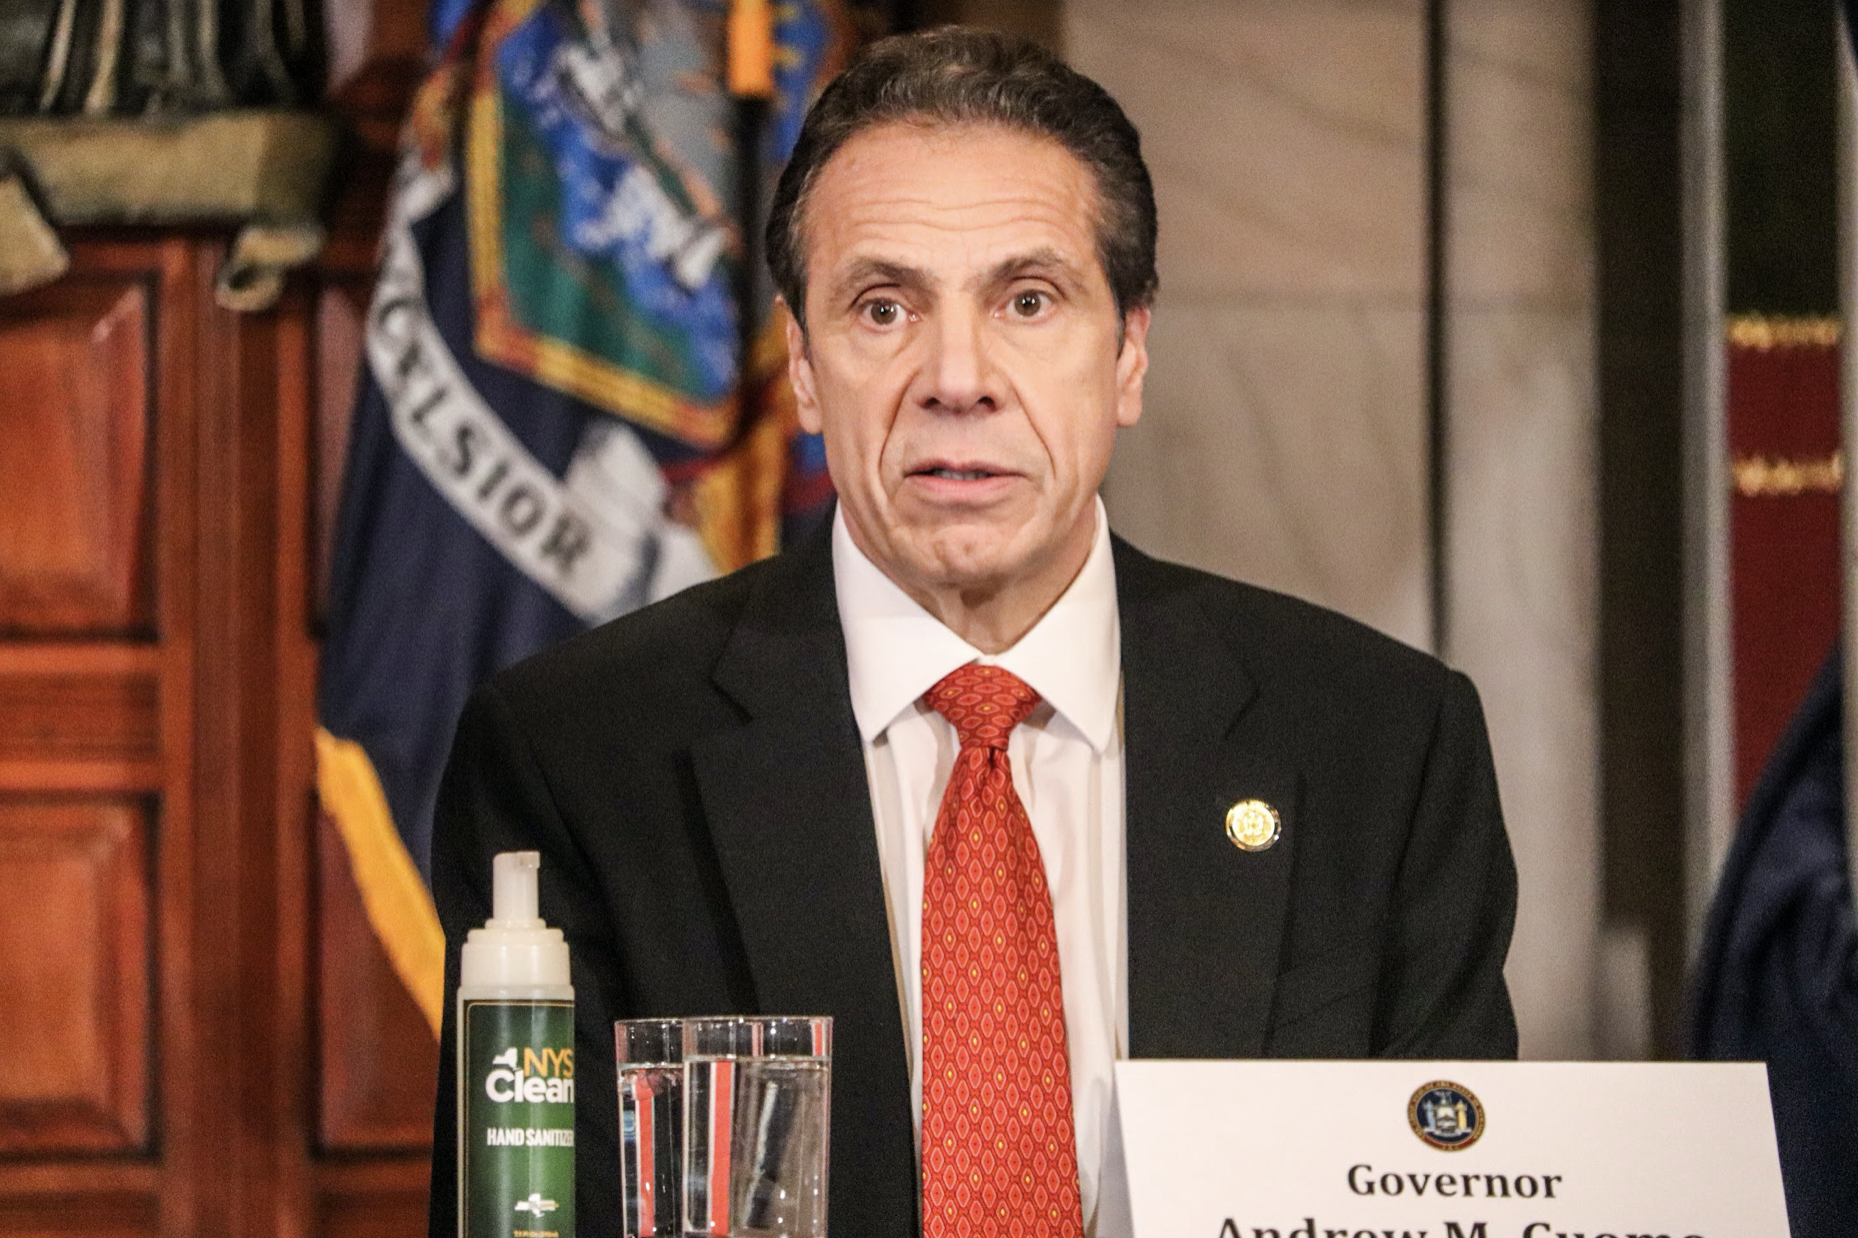 NYC Enacts New Measures to Slow COVID-19 Outbreak in High Density Areas